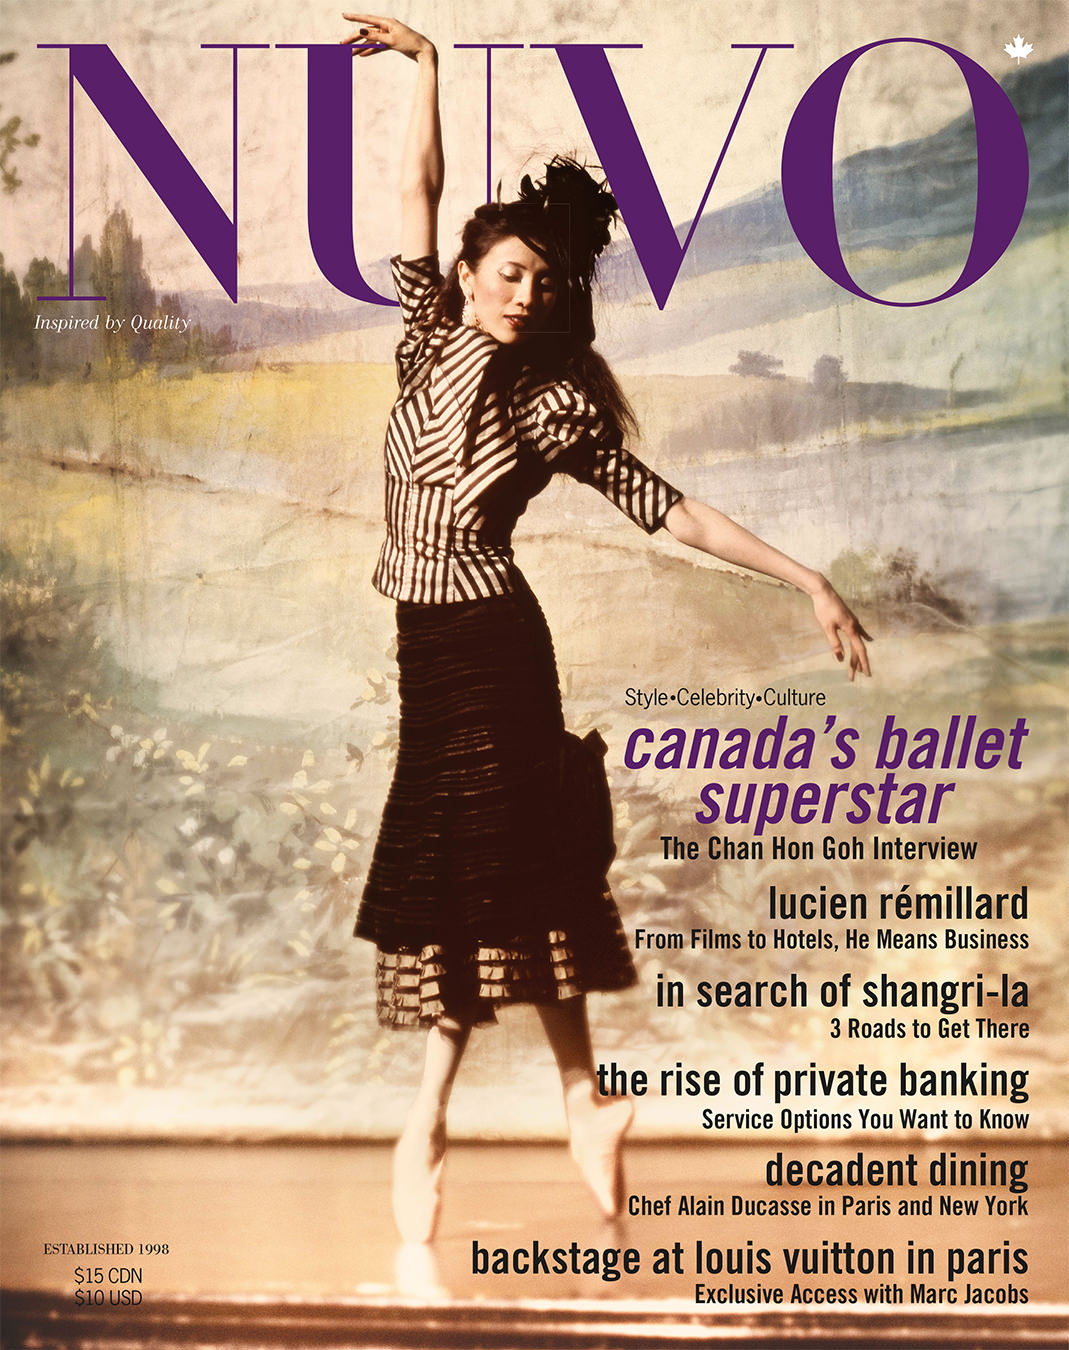 NUVO Magazine Autumn 2004 Cover featuring Chan Hon Goh